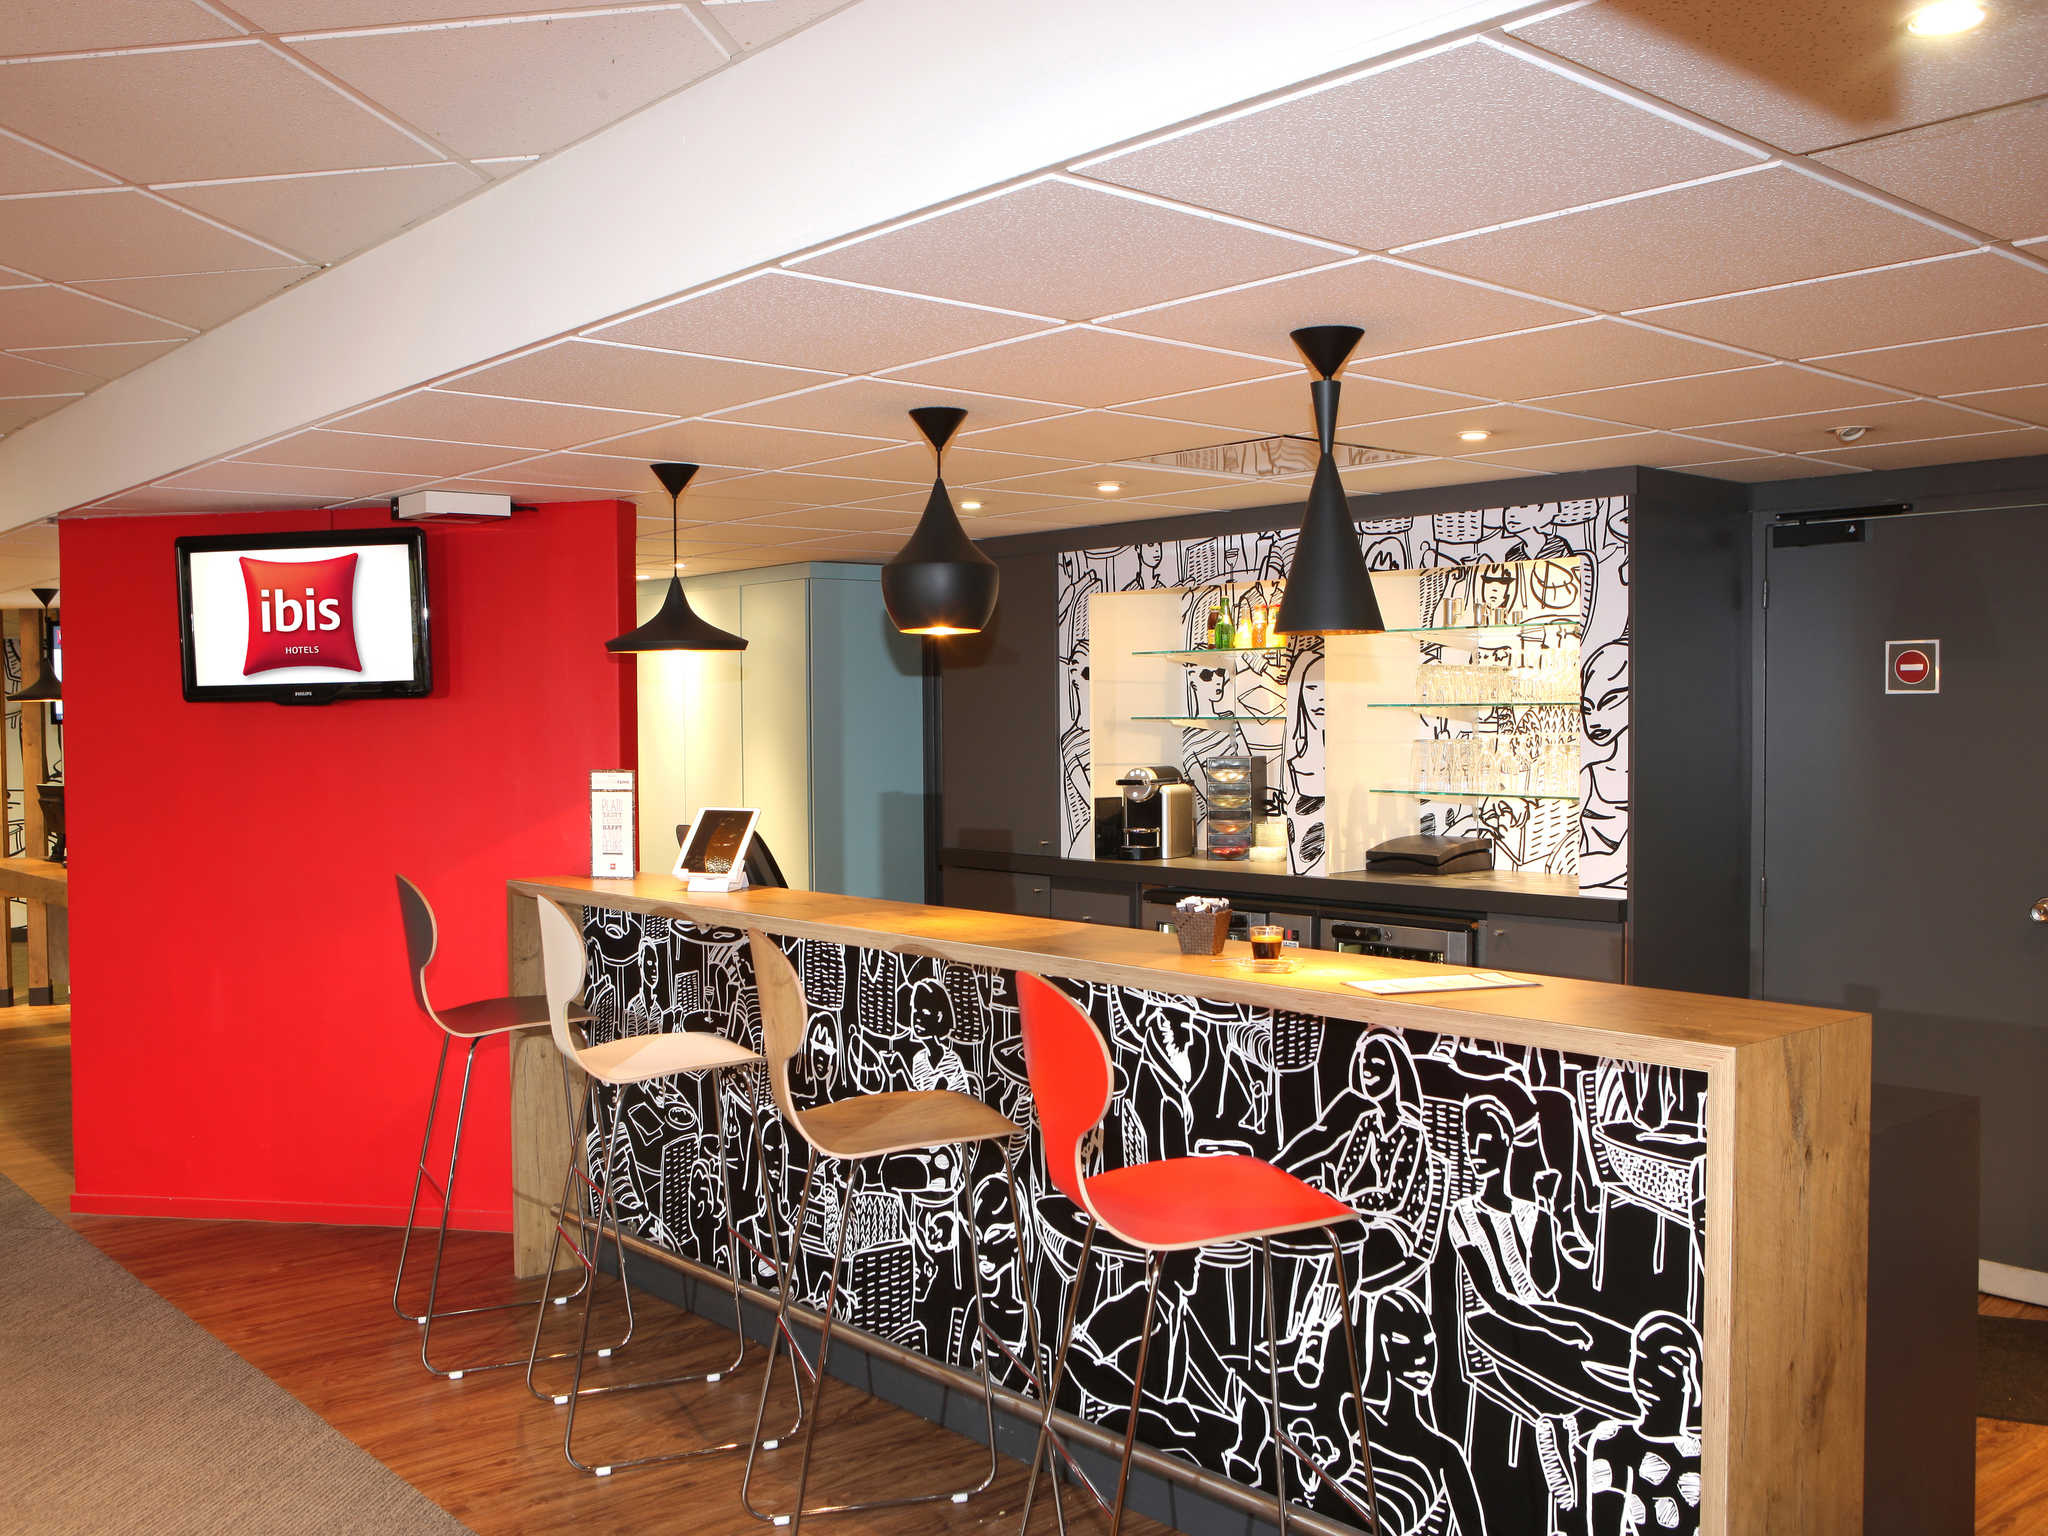 Elegant hotel ibis poitiers sud with auchan poitiers sud for La table parisienne poitiers